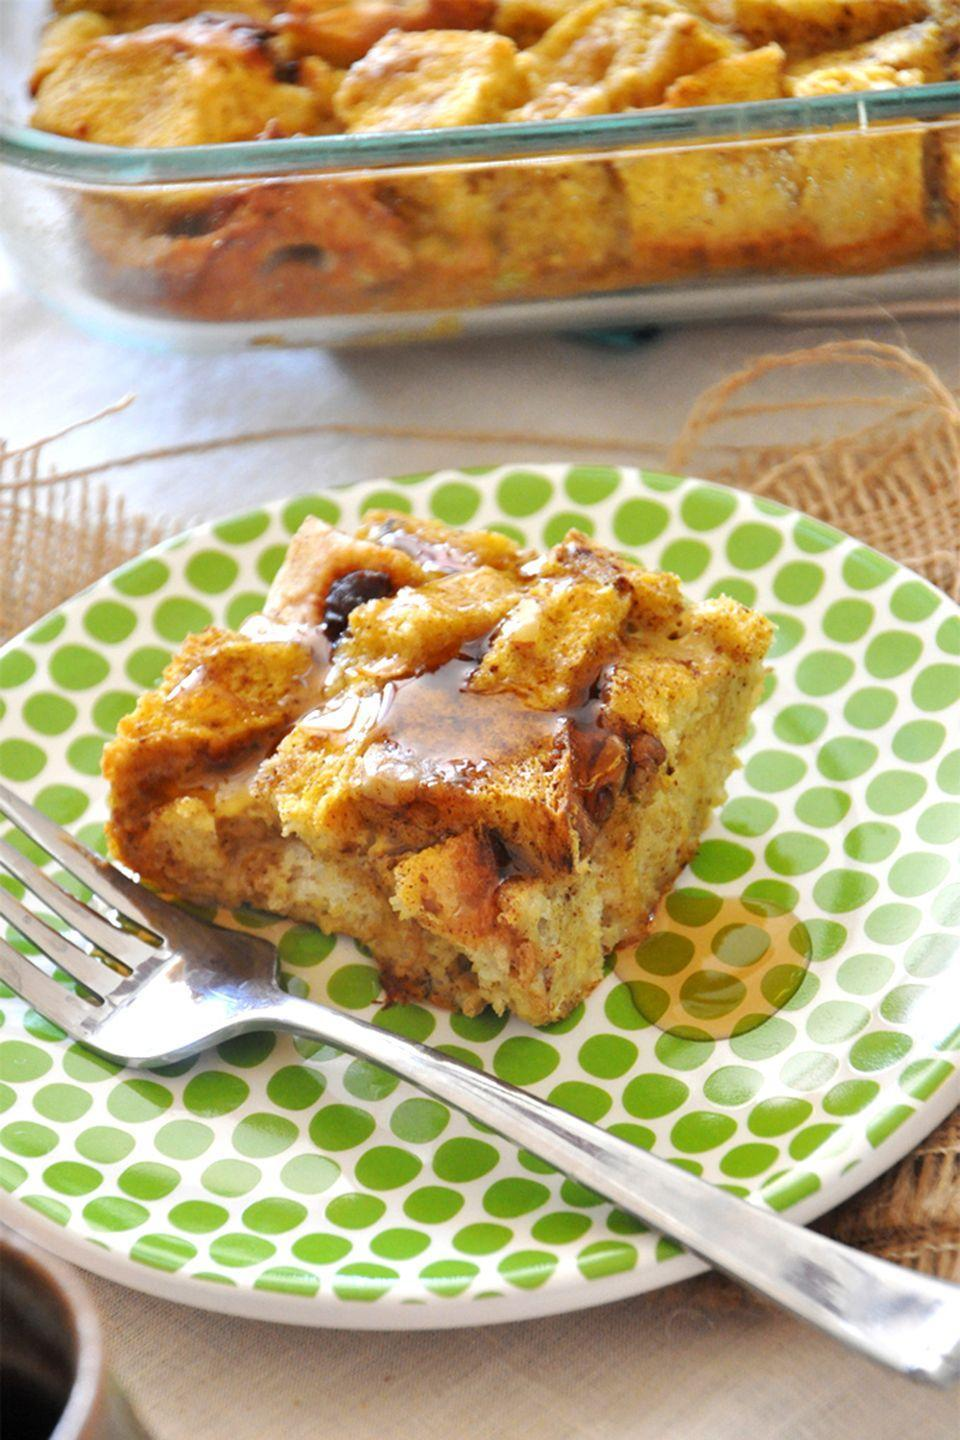 """<p>Toss the ingredients for this delicious French toast recipe together the night before while you're putting away leftovers, then pop it in the oven for 45 minutes the following morning.</p><p><strong>Get the recipe at <a href=""""http://minimalistbaker.com/pumpkin-french-toast-bake/"""" rel=""""nofollow noopener"""" target=""""_blank"""" data-ylk=""""slk:Minimalist Baker"""" class=""""link rapid-noclick-resp"""">Minimalist Baker</a>.</strong></p>"""